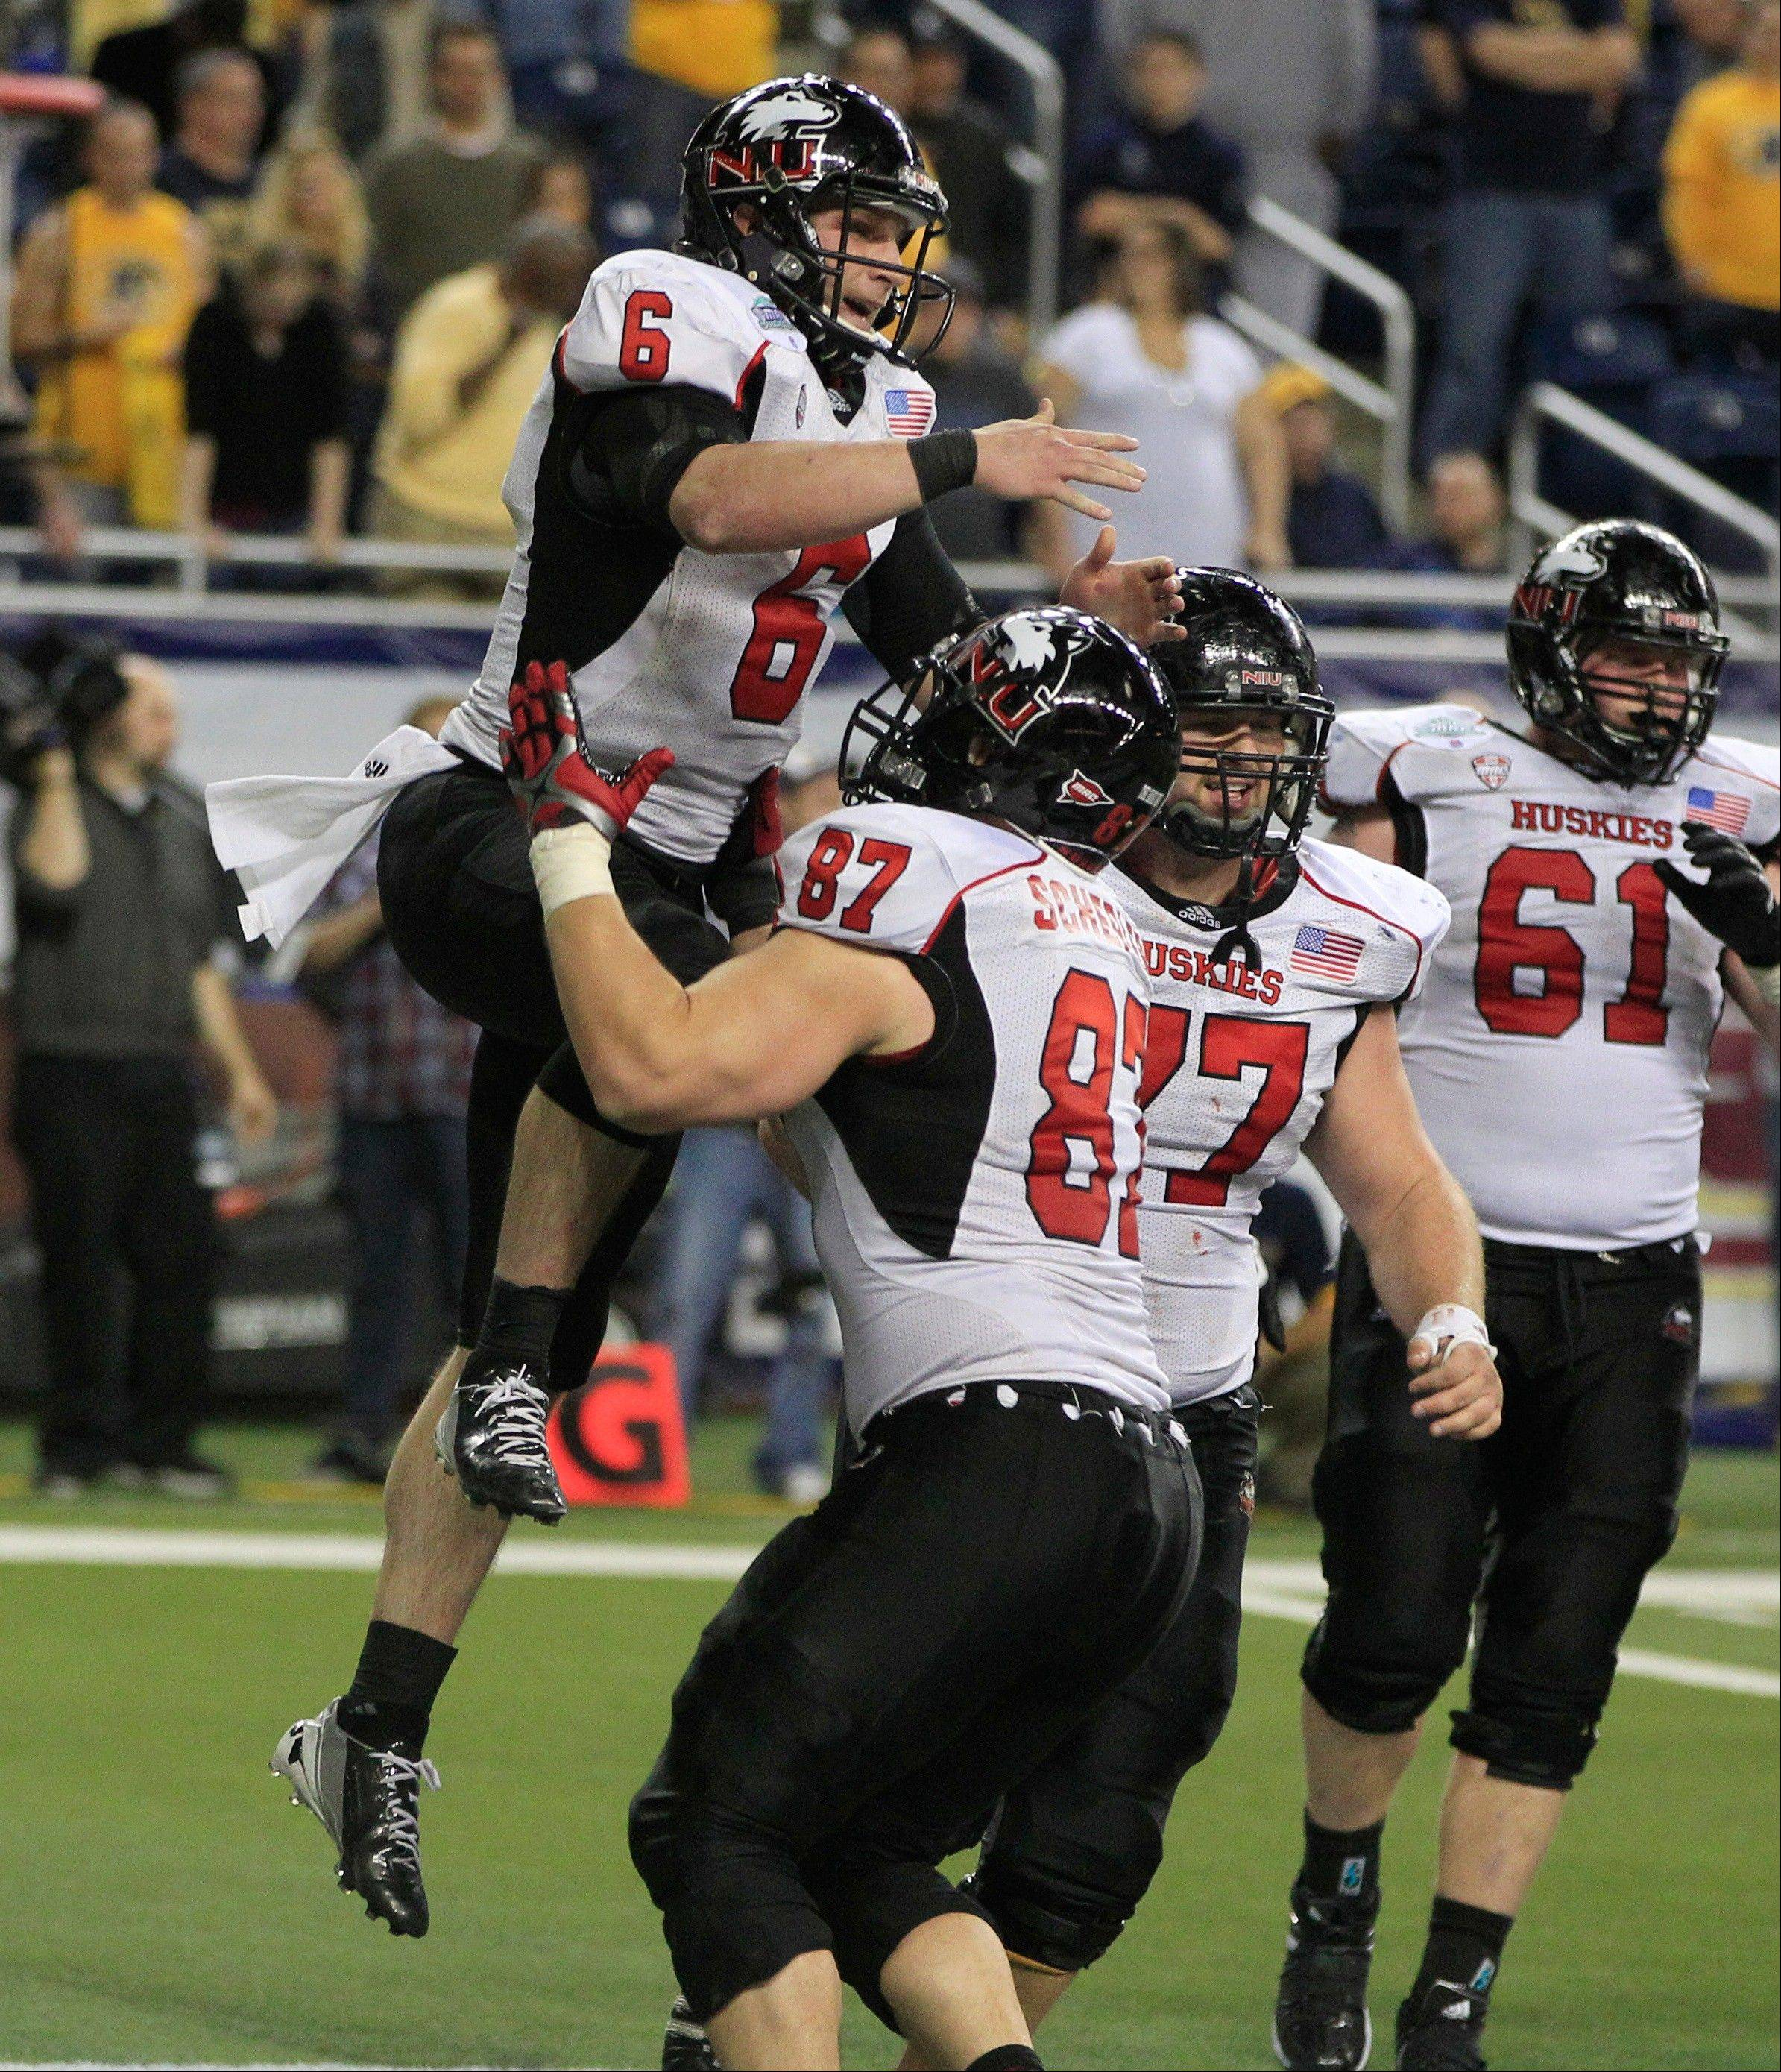 Northern Illinois quarterback Jordan Lynch (6) jumps onto teammate Jason Schepler after scoring a touchdown Friday during the second overtime.